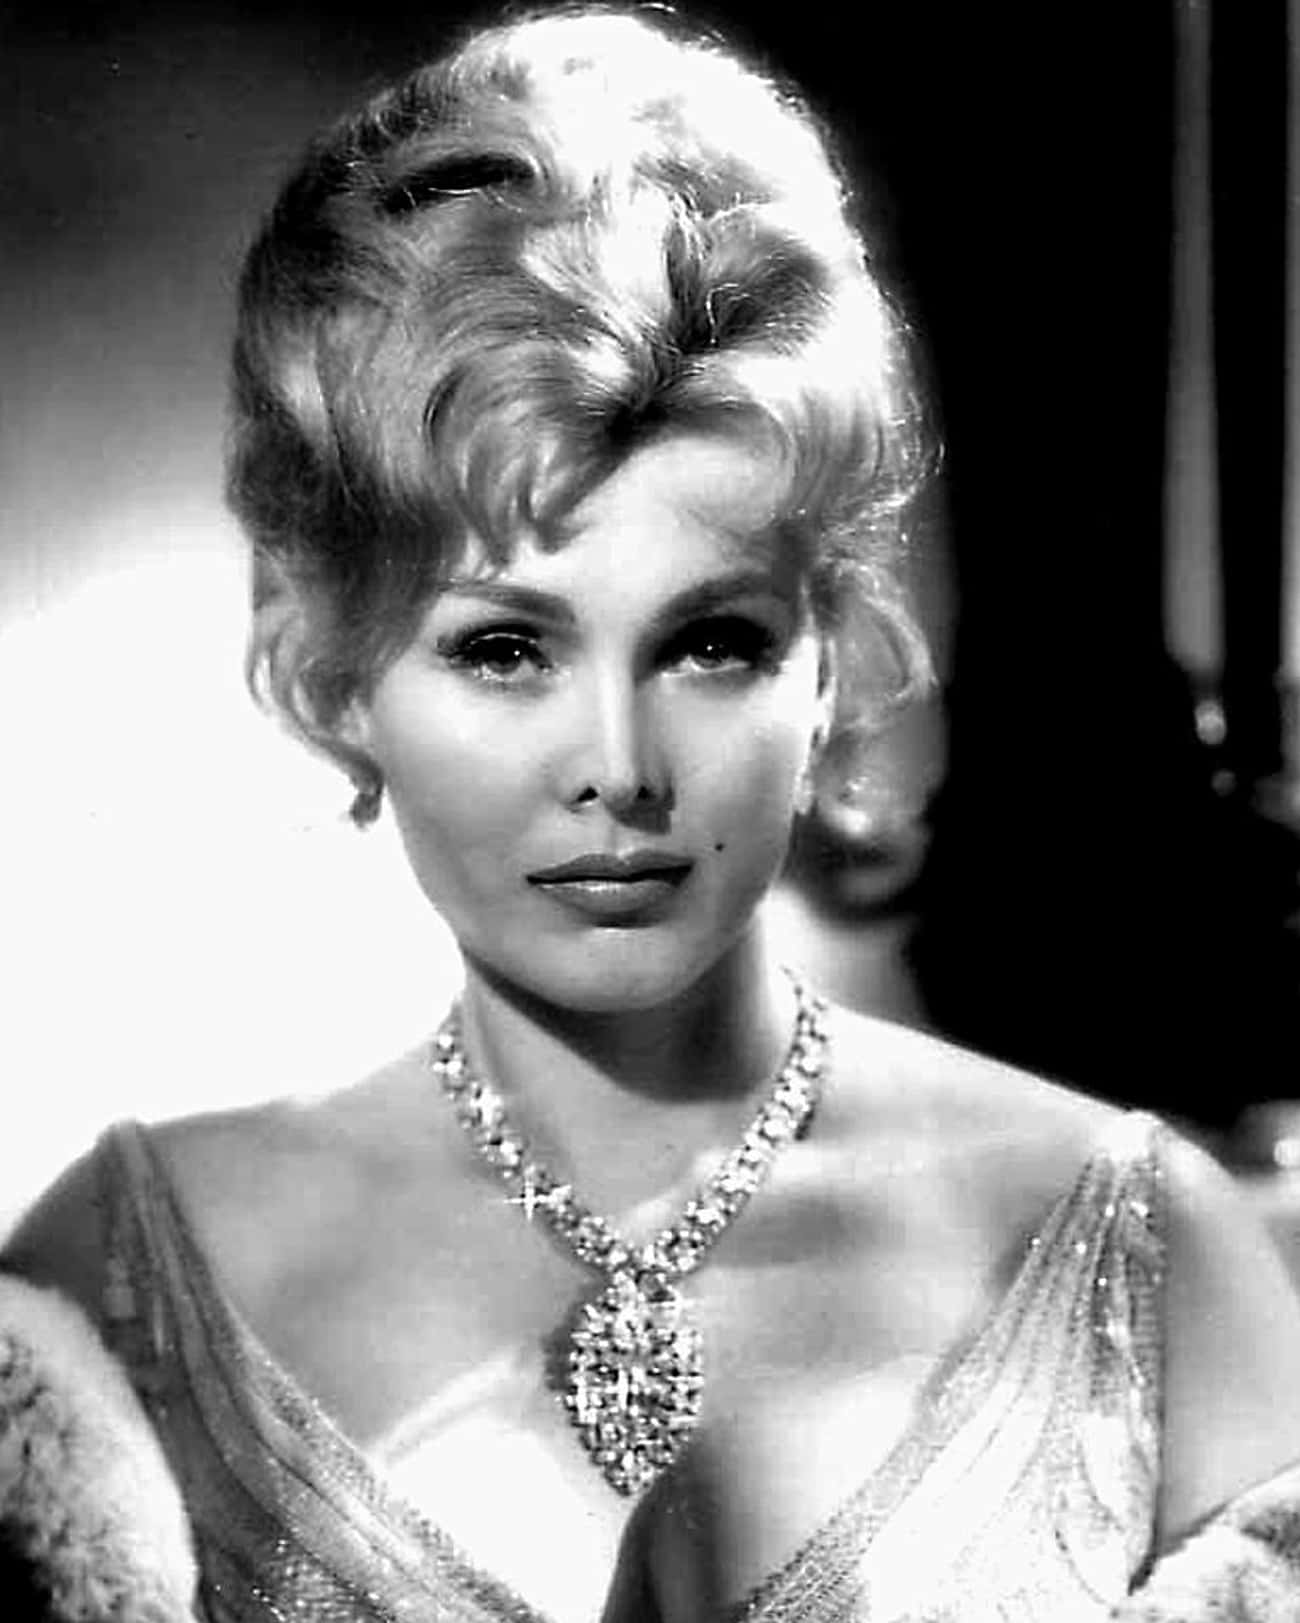 Zsa Zsa Gábor is listed (or ranked) 21 on the list Actors and Actresses Who Died in 2016